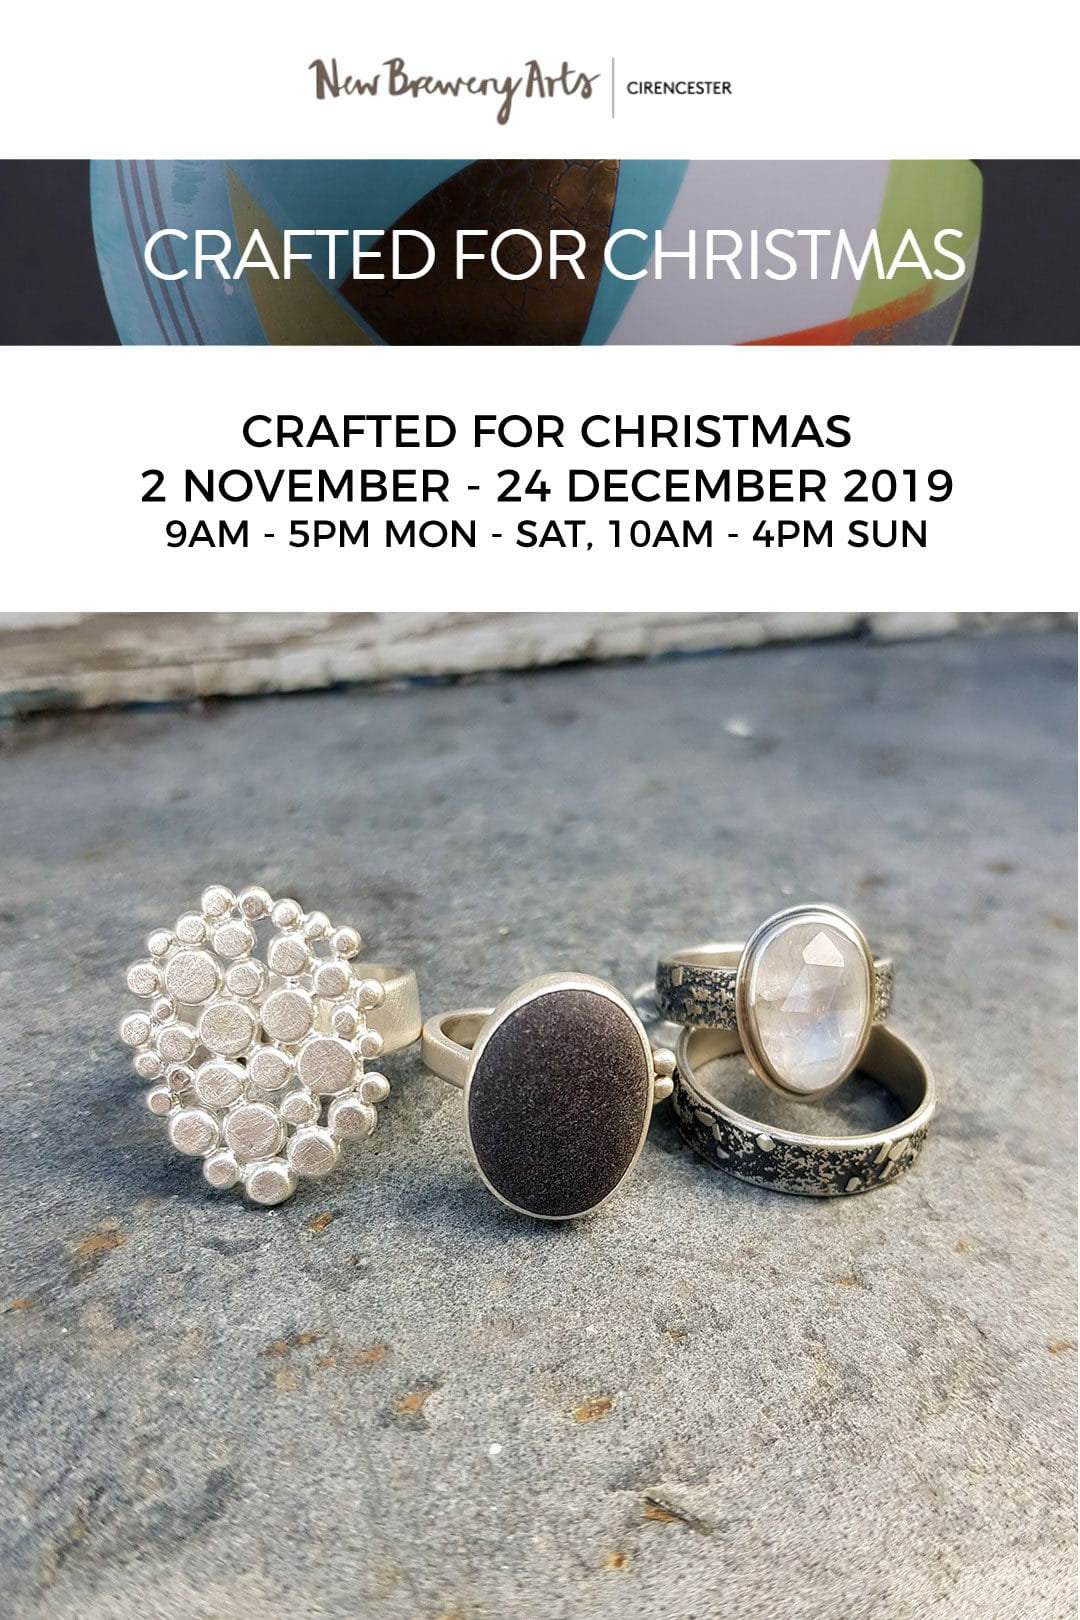 Crafted for Christmas Exhibition, New Brewery Arts, Cirencester